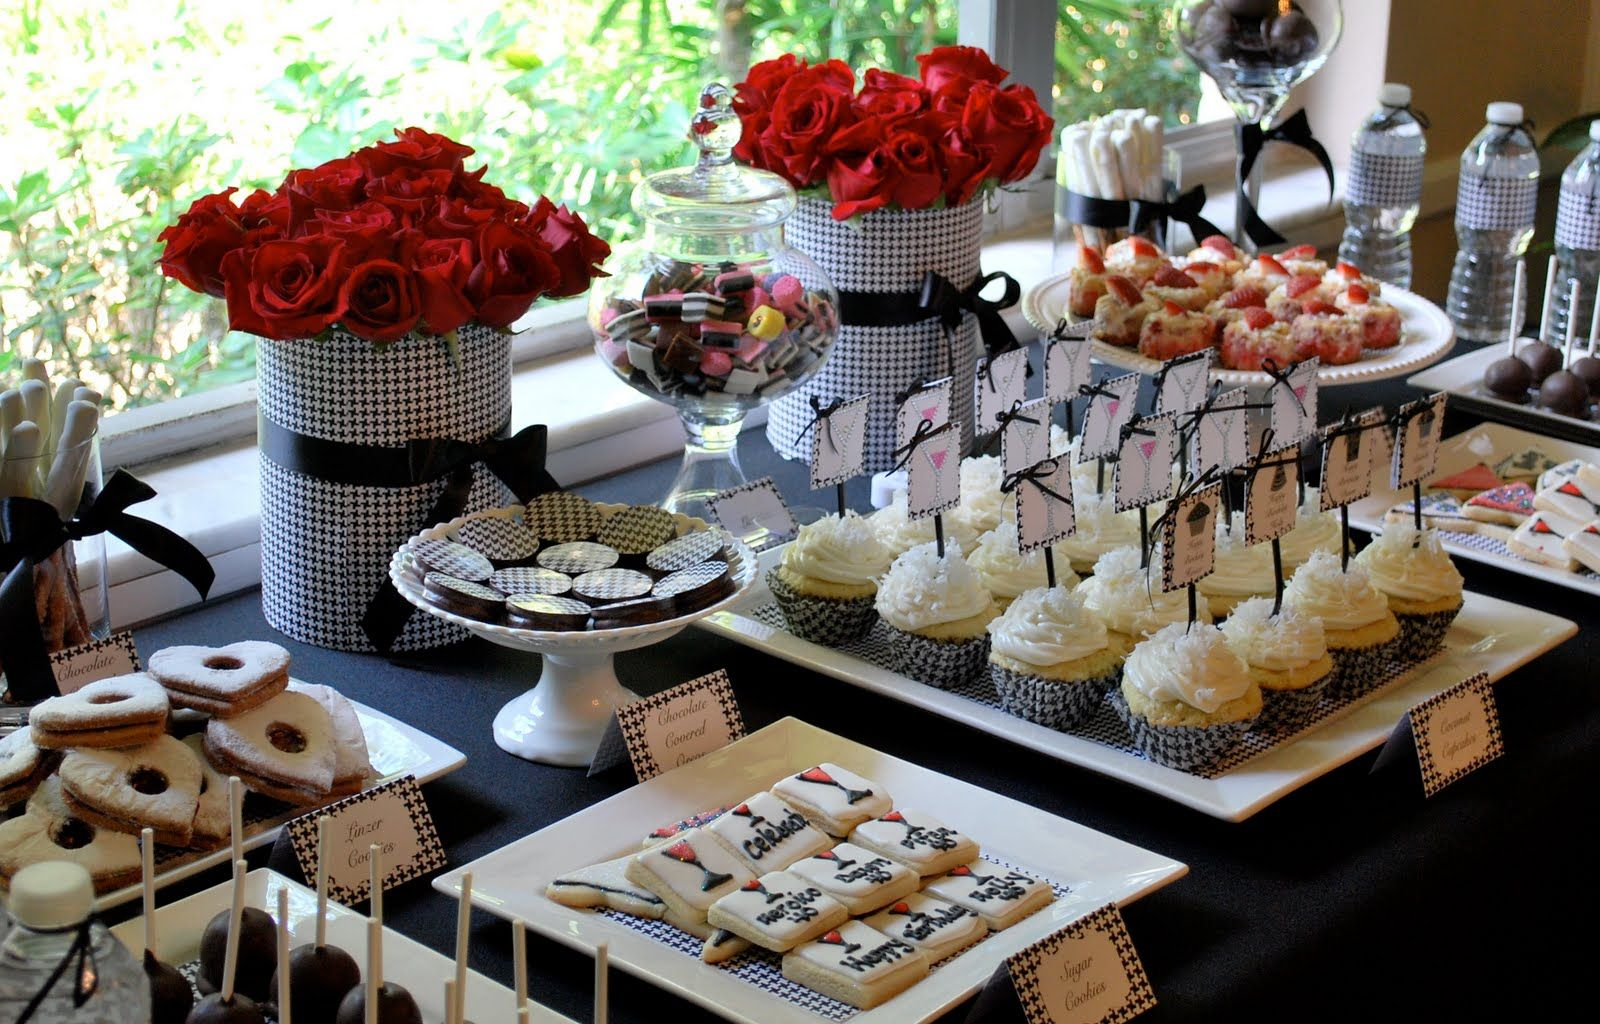 Adult party table decoration ideas - Image Detail For Birthday Party Dessert Candy Table Buffet Ideas